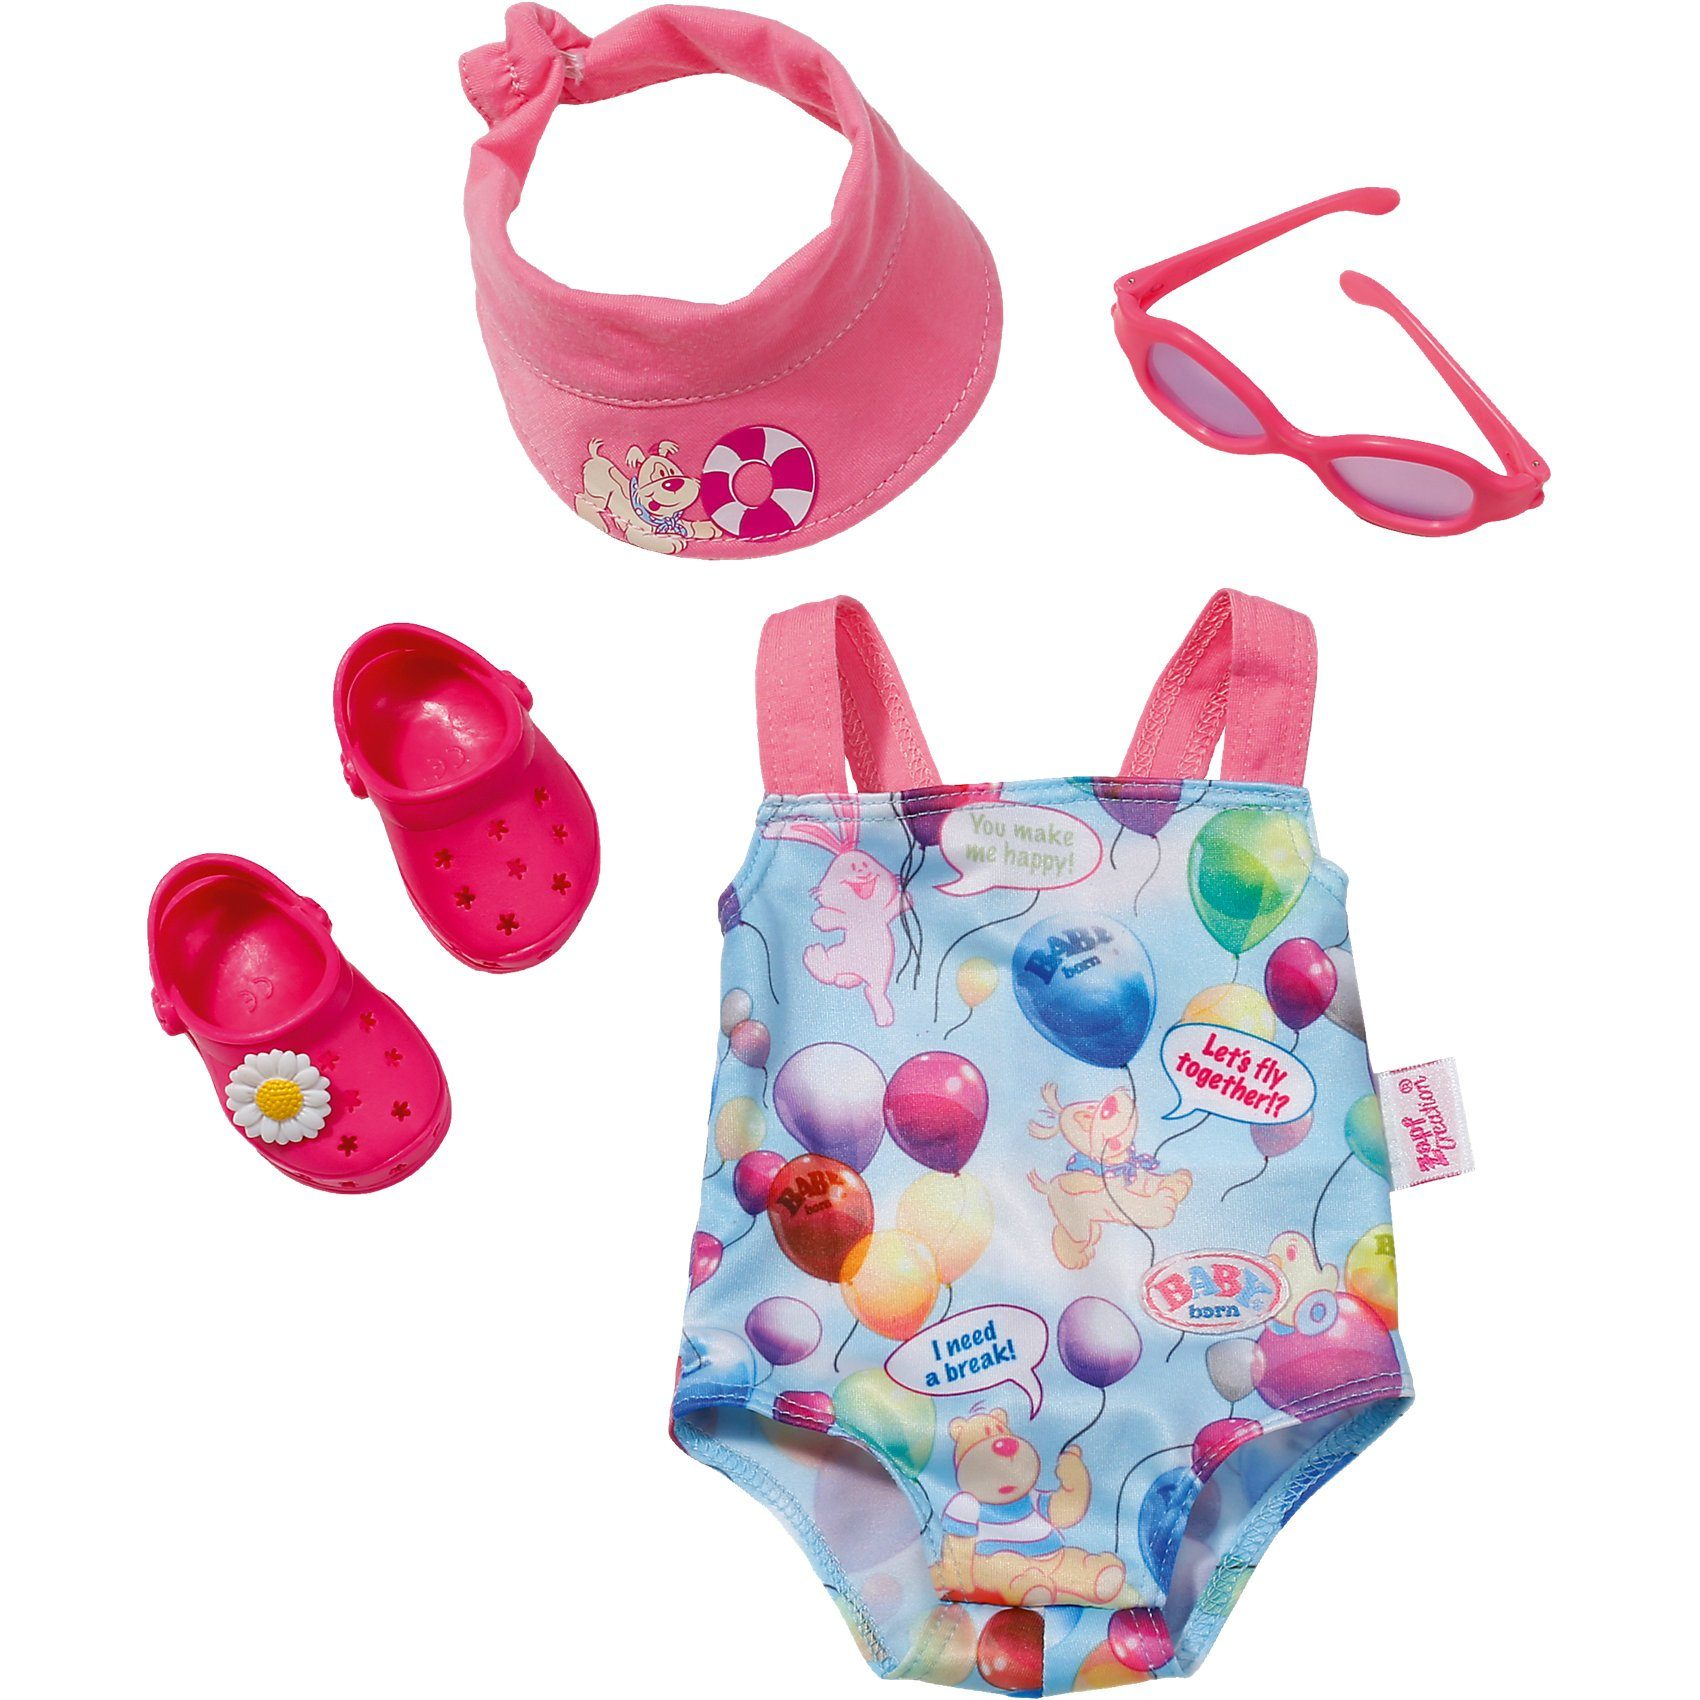 Zapf Creation BABY born® Puppenkleidung Badeanzug-Set